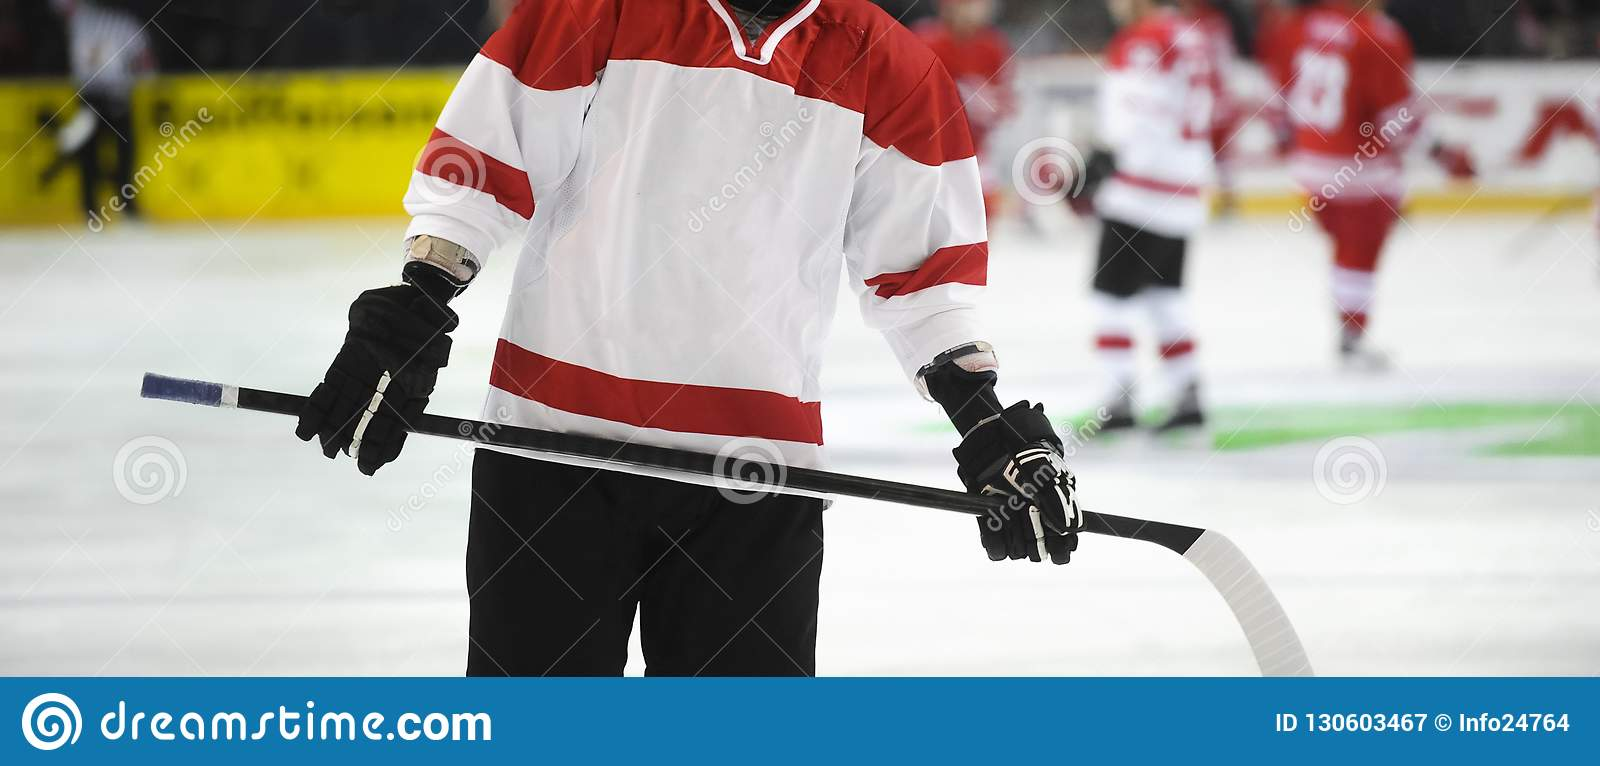 Ice hockey player on the ice. Team sport